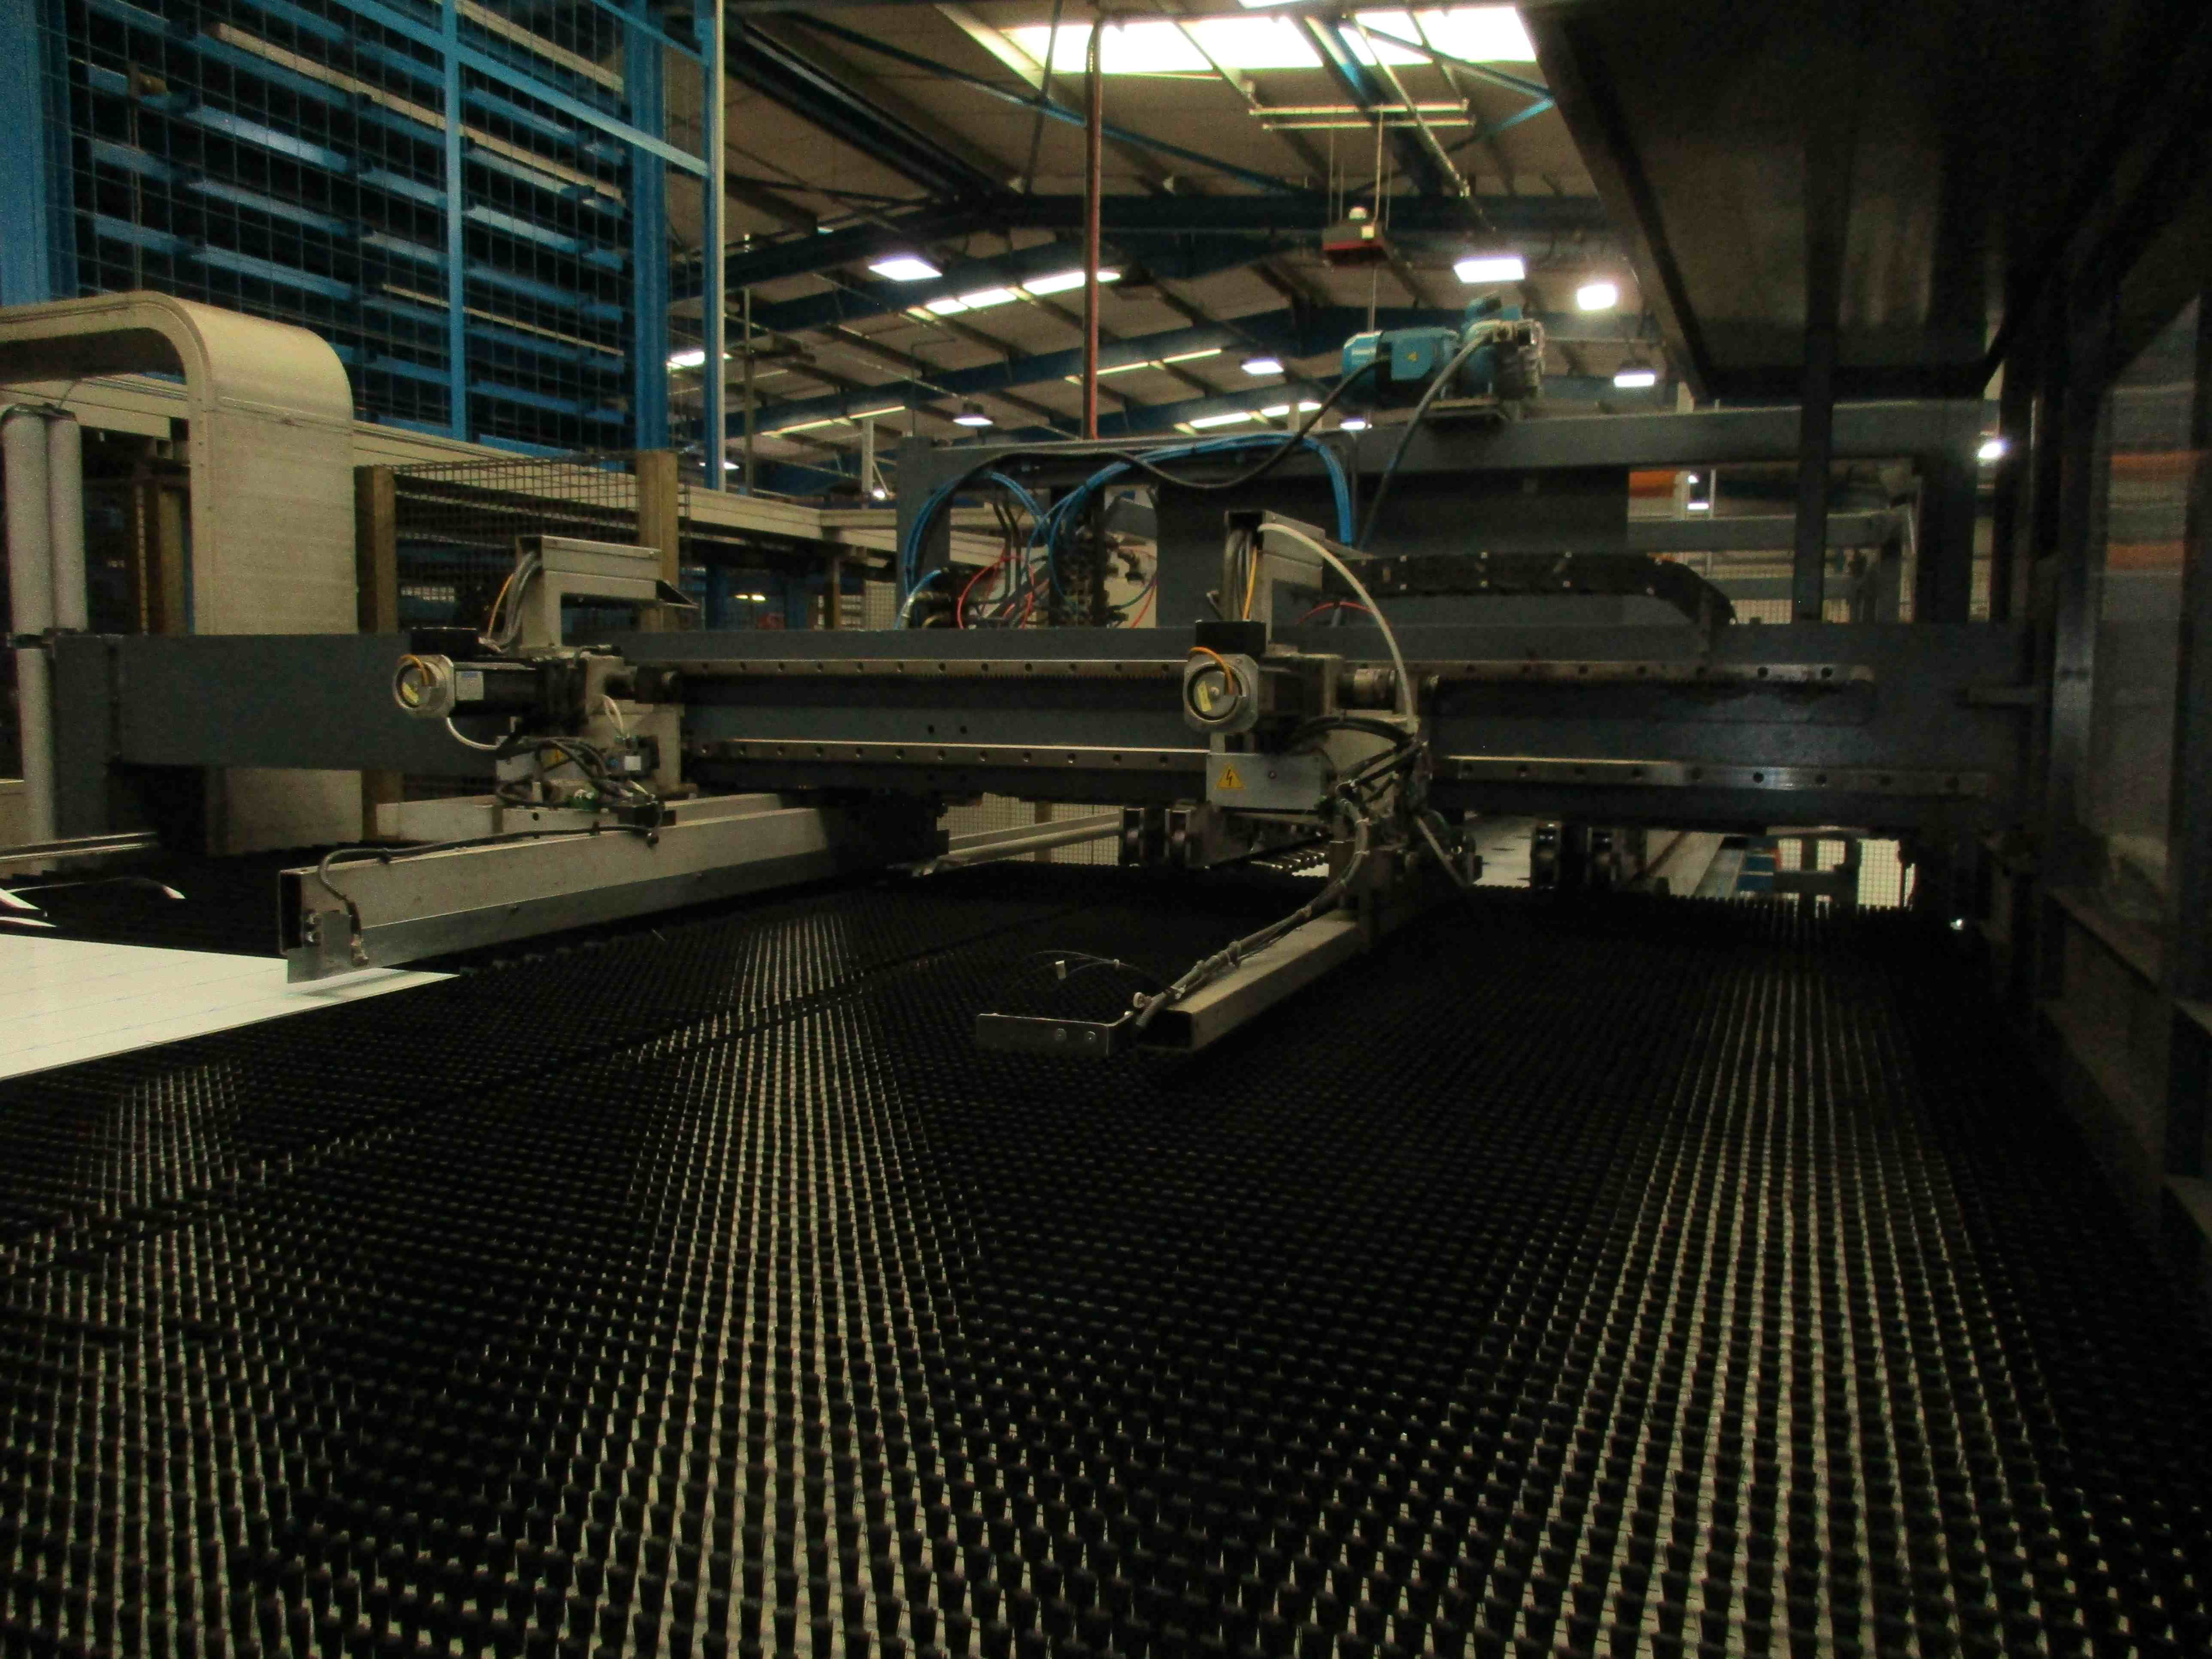 Salvagnini S4 Cnc Punch Press With Automatic Sheet Load